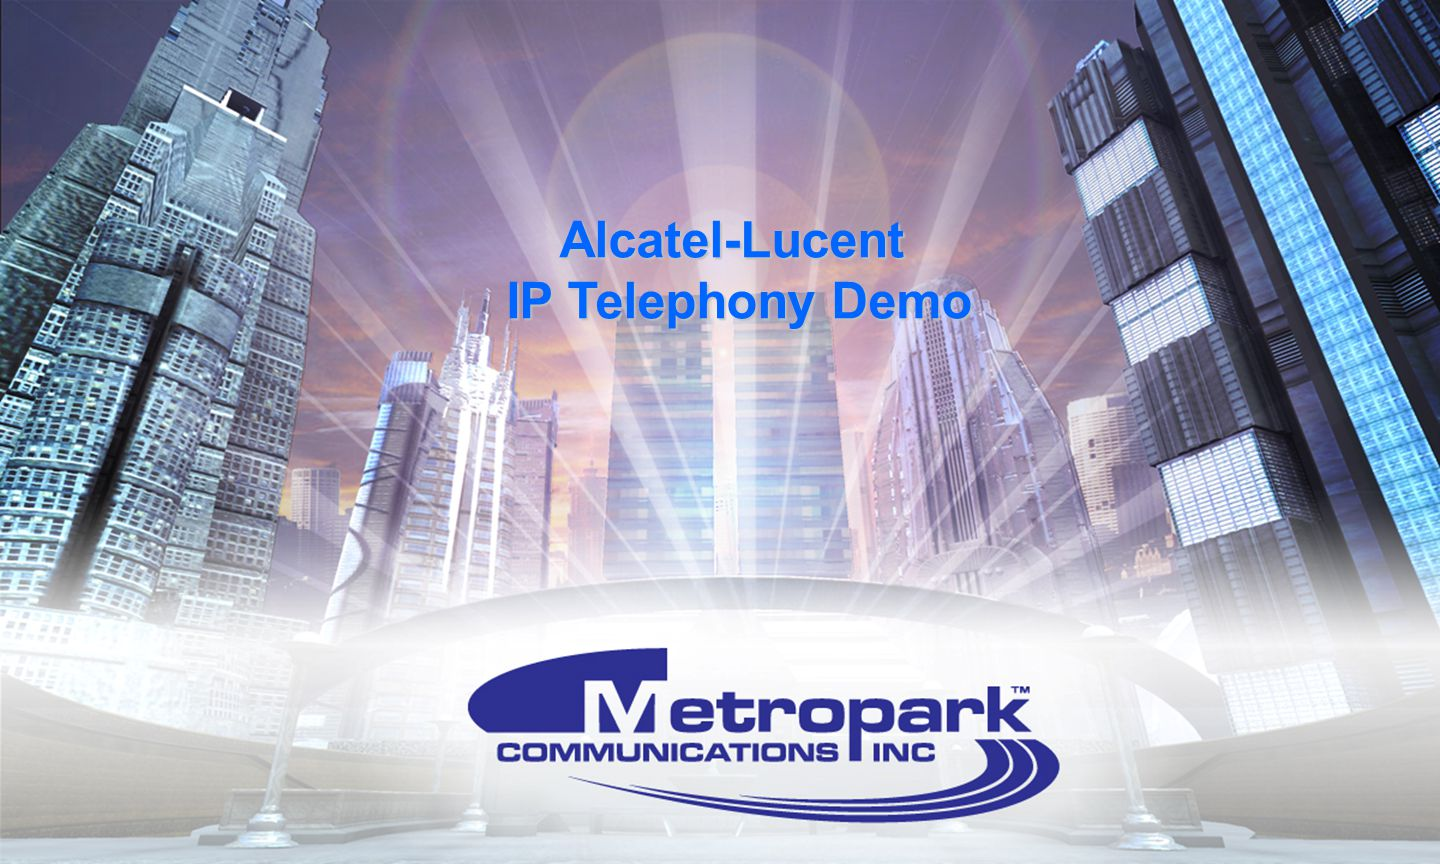 Alcatel-Lucent IP Telephony Demo